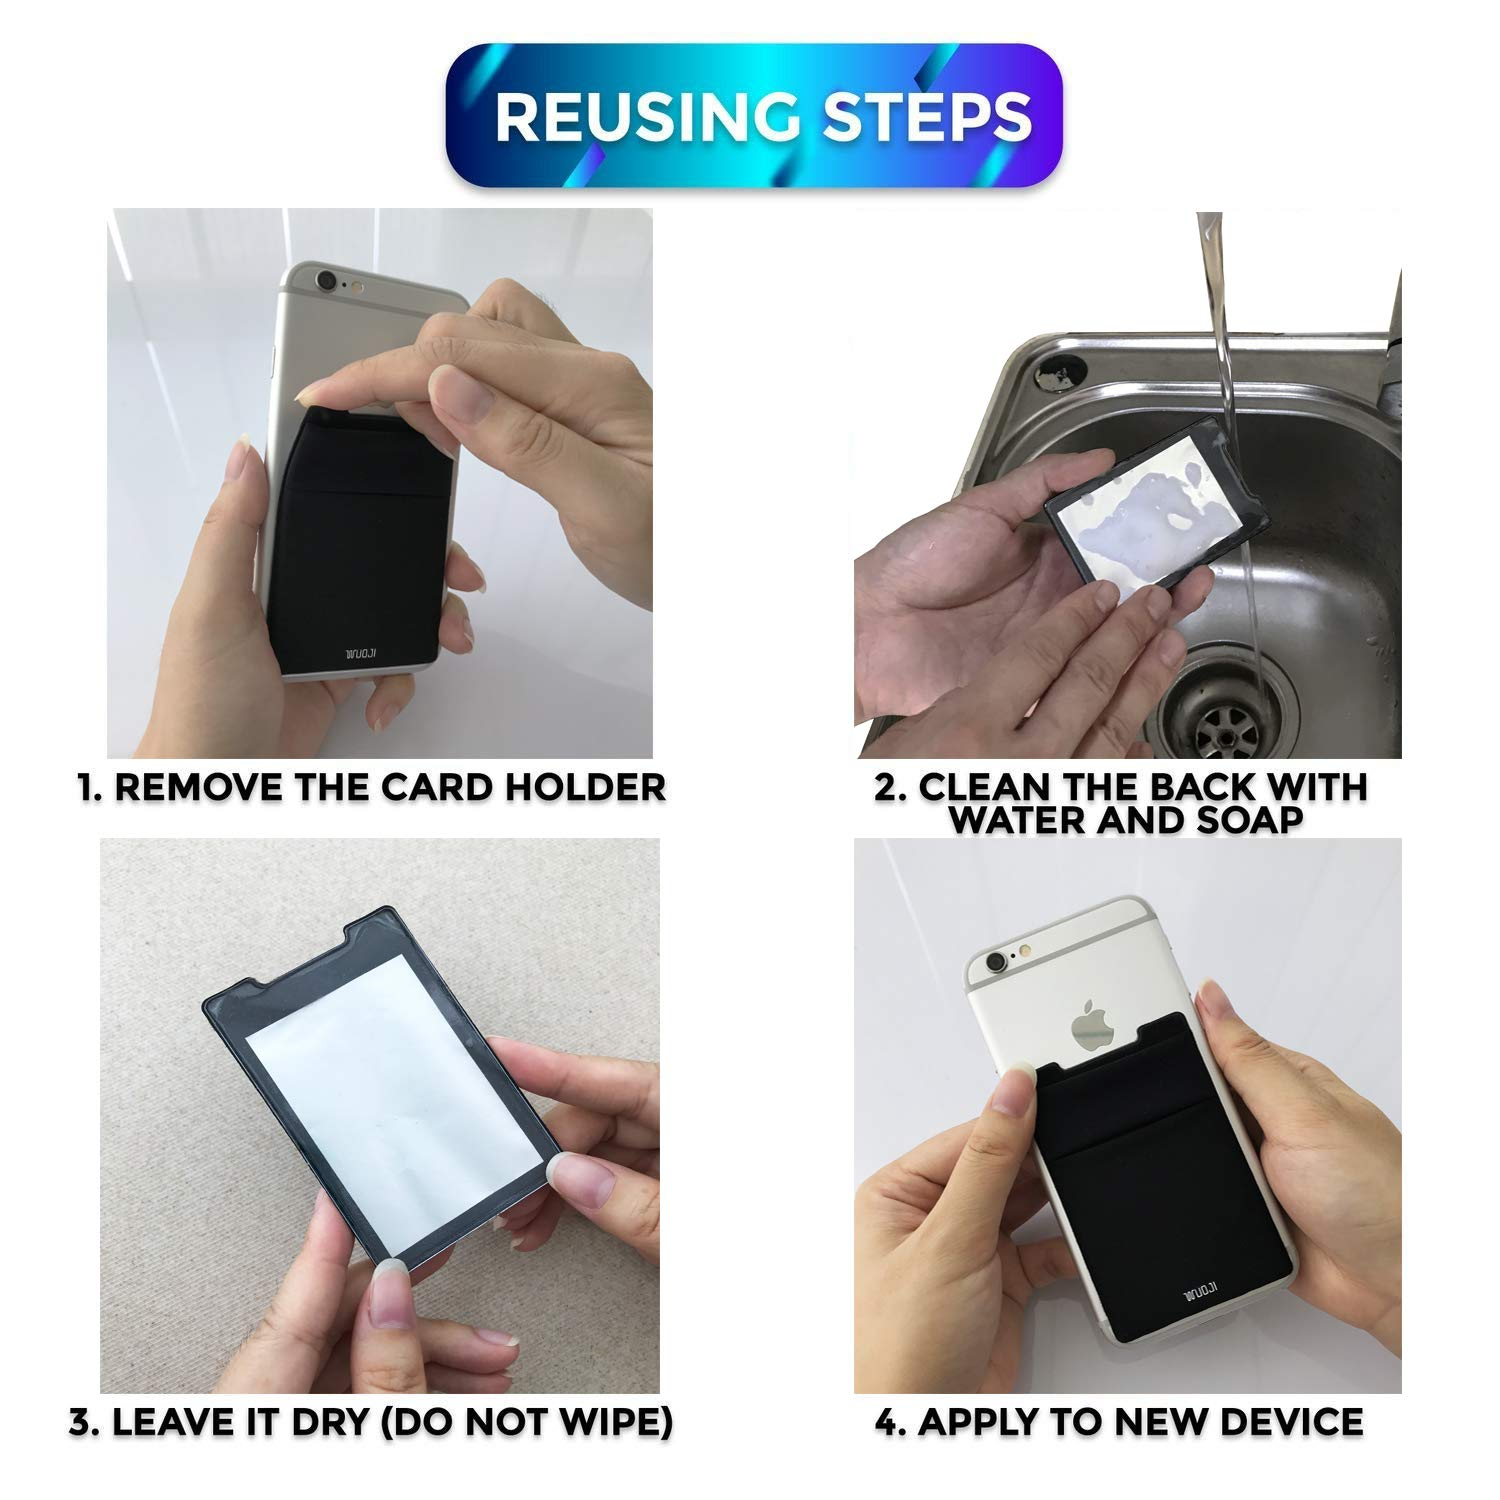 [2pc]RFID Blocking Phone Card Wallet - Double Secure Pocket - Ultra-slim Self Adhesive Credit Card Holder Card Sleeves Phone wallet sticker For All Smartphones(Black2) by WuoJI (Image #7)